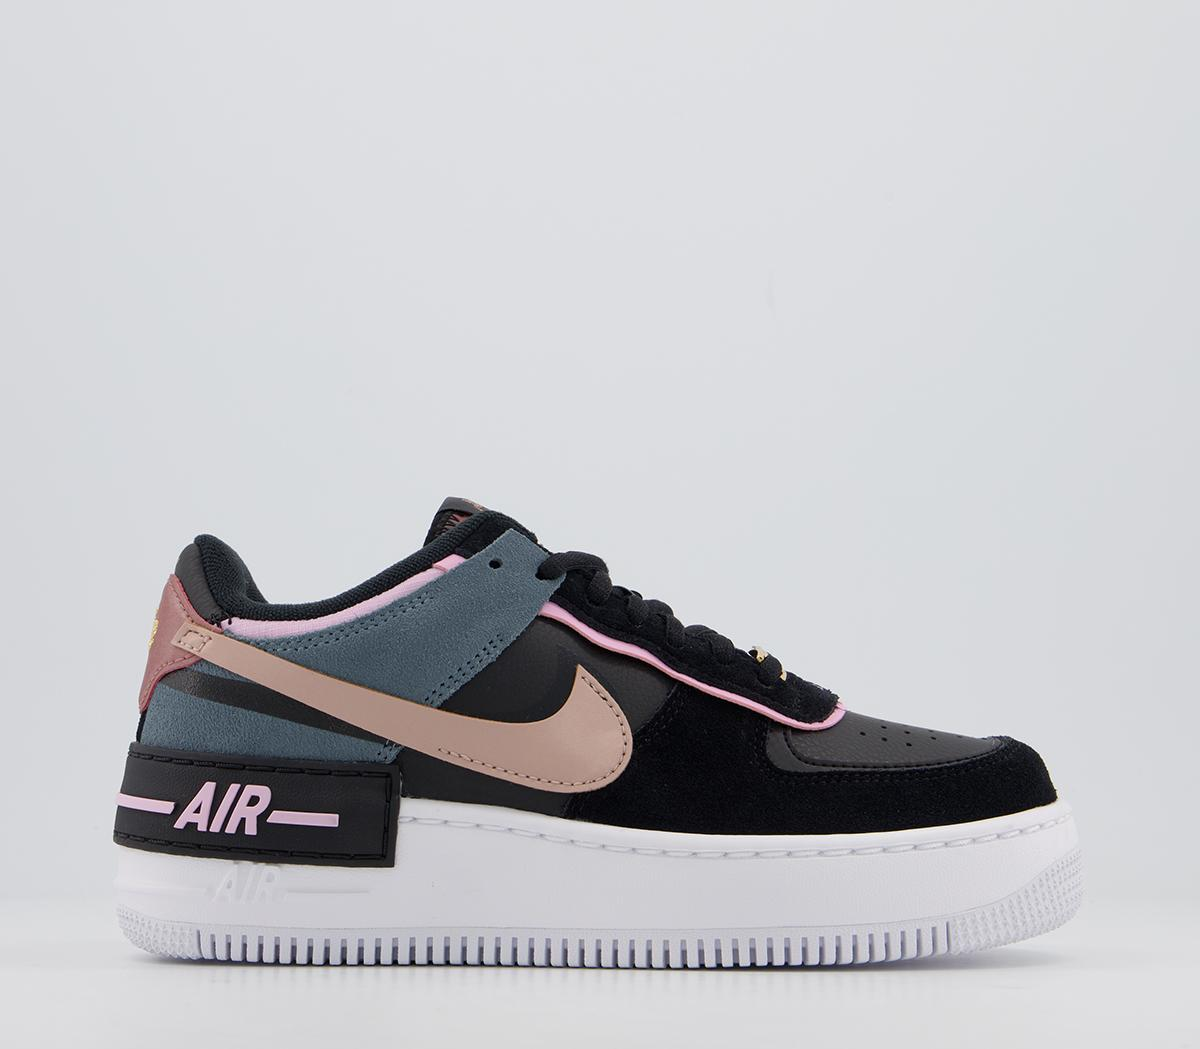 Nike Air Force 1 Shadow Black Metallic Red Bronze Light Artic Pink Unisex Sports Air force one just had a near miss with a drone according to reporter onboard (updated). air force 1 shadow